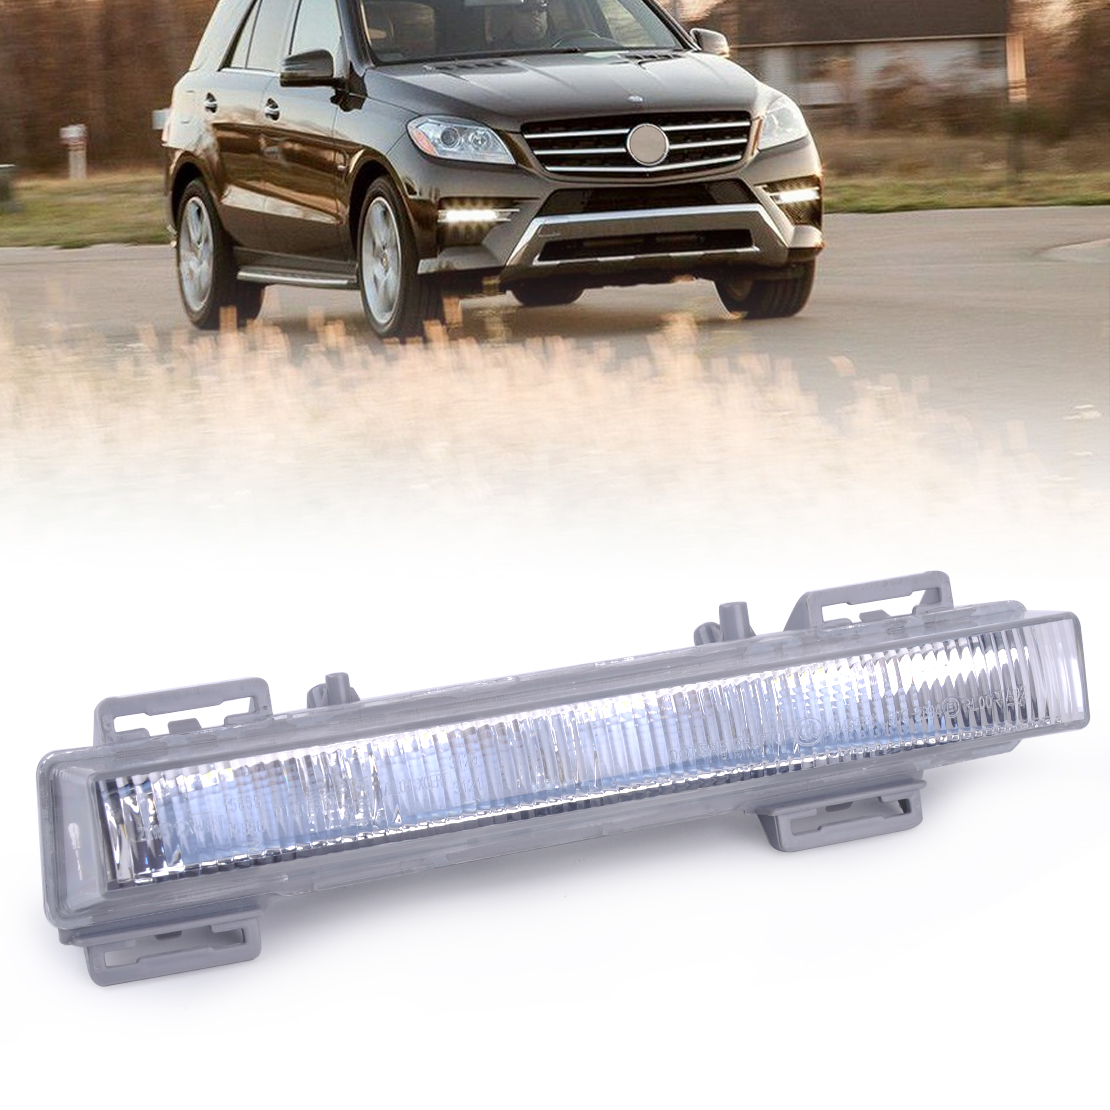 beler 1pc Front Right LED Daytime Running Light Driving Lamp Fit for Mercedes Benz W166 ML350 ML500 ML550 X204 GLK250 2049065501 front fog light for mercedes benz w163 ml270 ml230 ml320 ml400 ml350 ml500 ml430 ml55